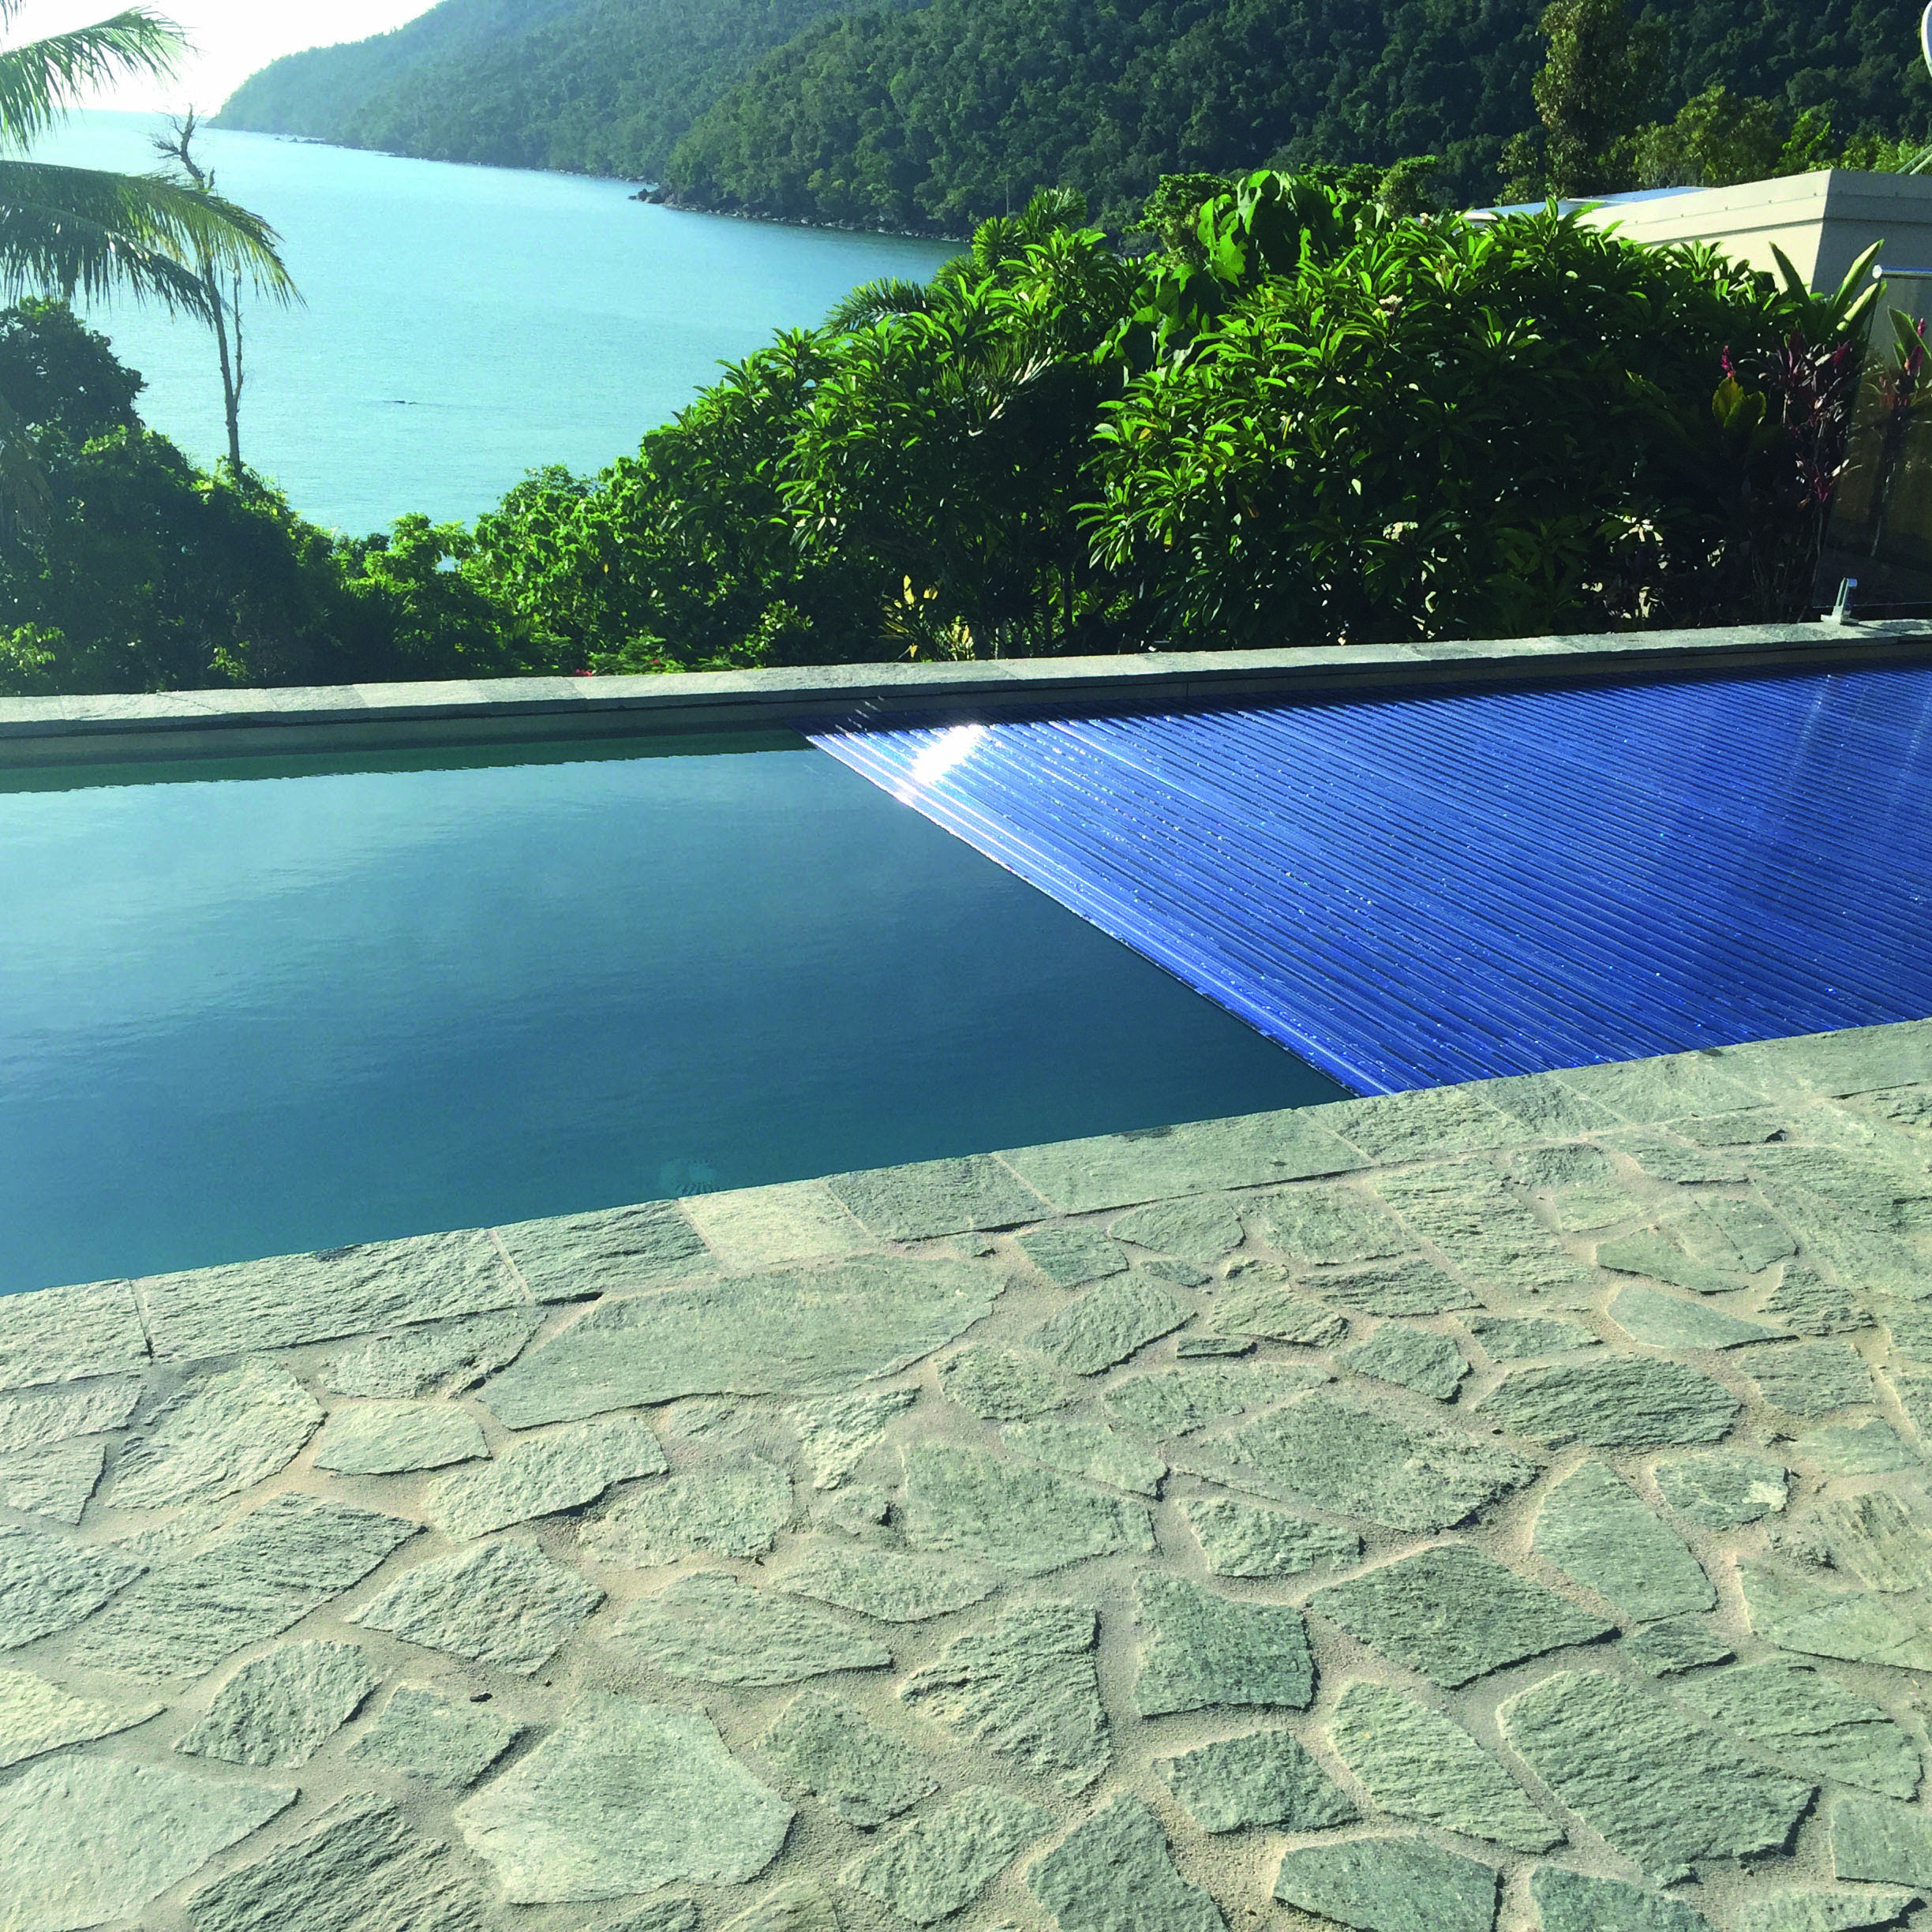 Pool covers: an innovative and functional design